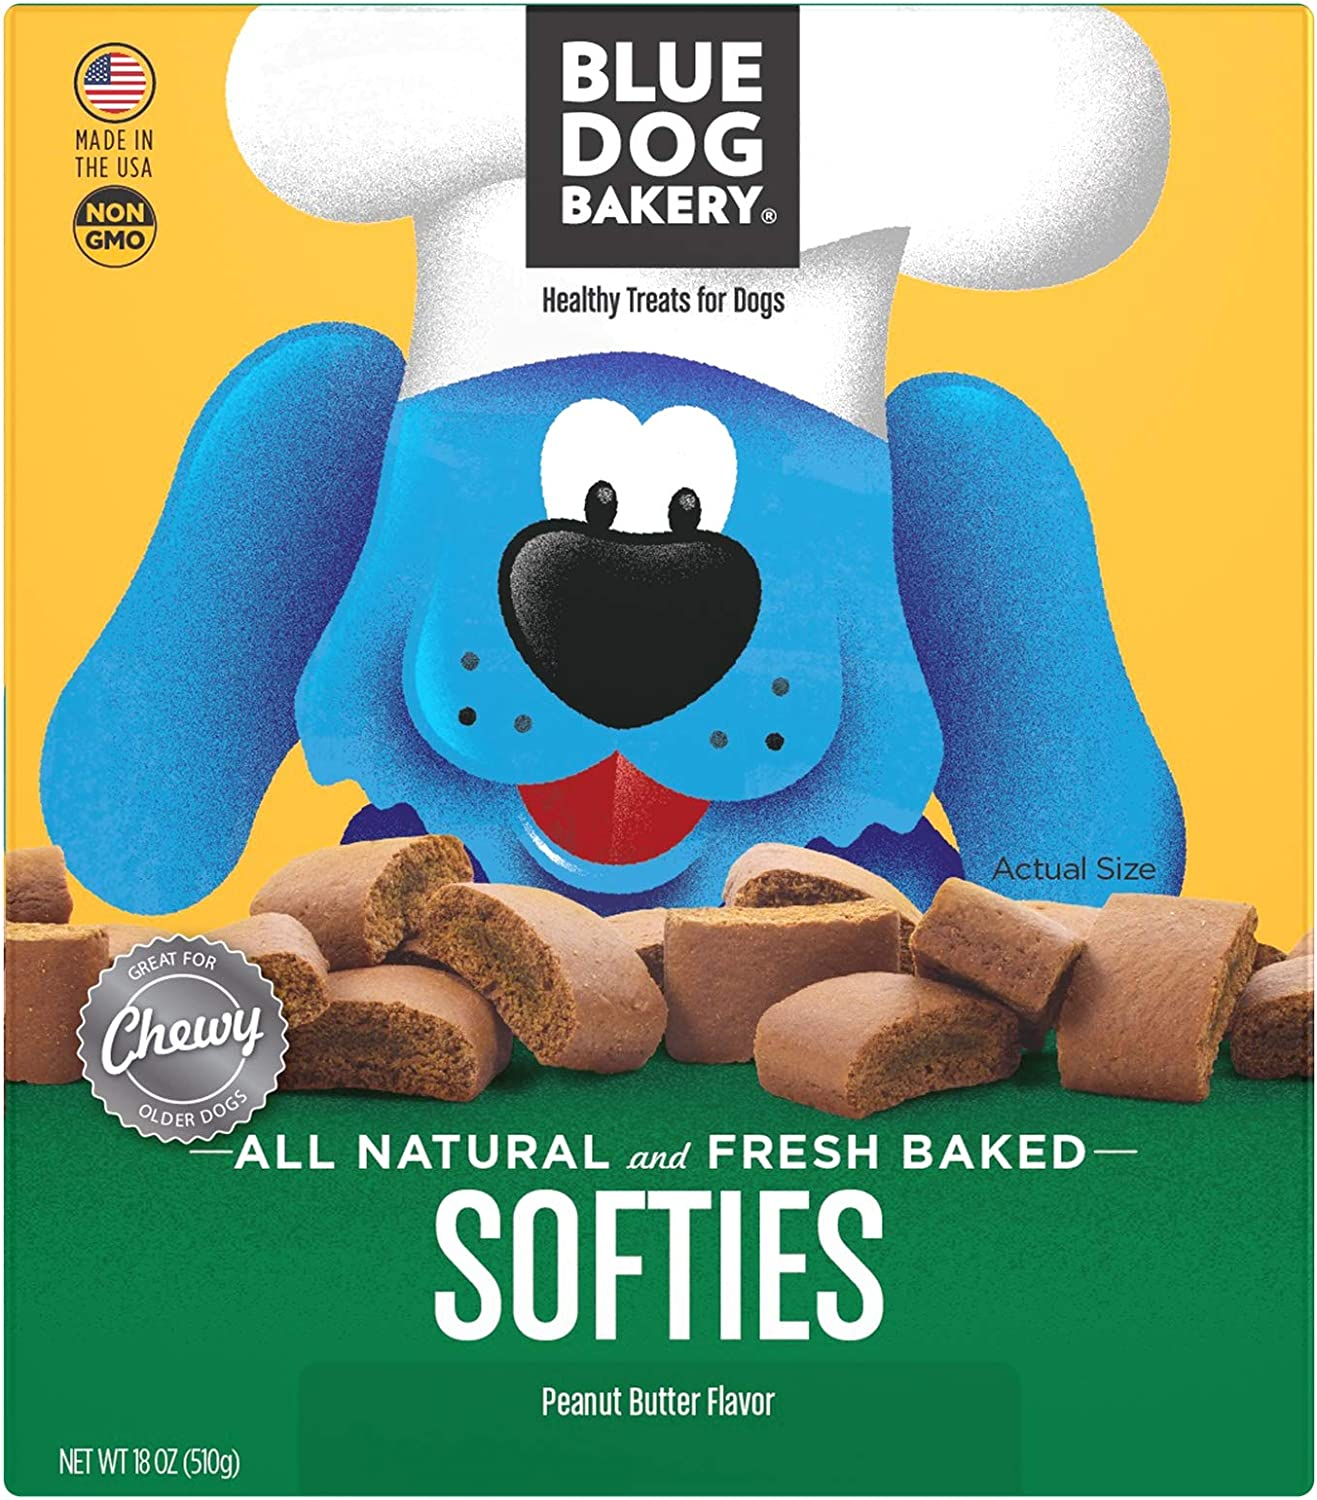 bluee Dog Bakery Softies, Peanut Butter Flavor, All Natural and Fresh Baked 18 Ounce